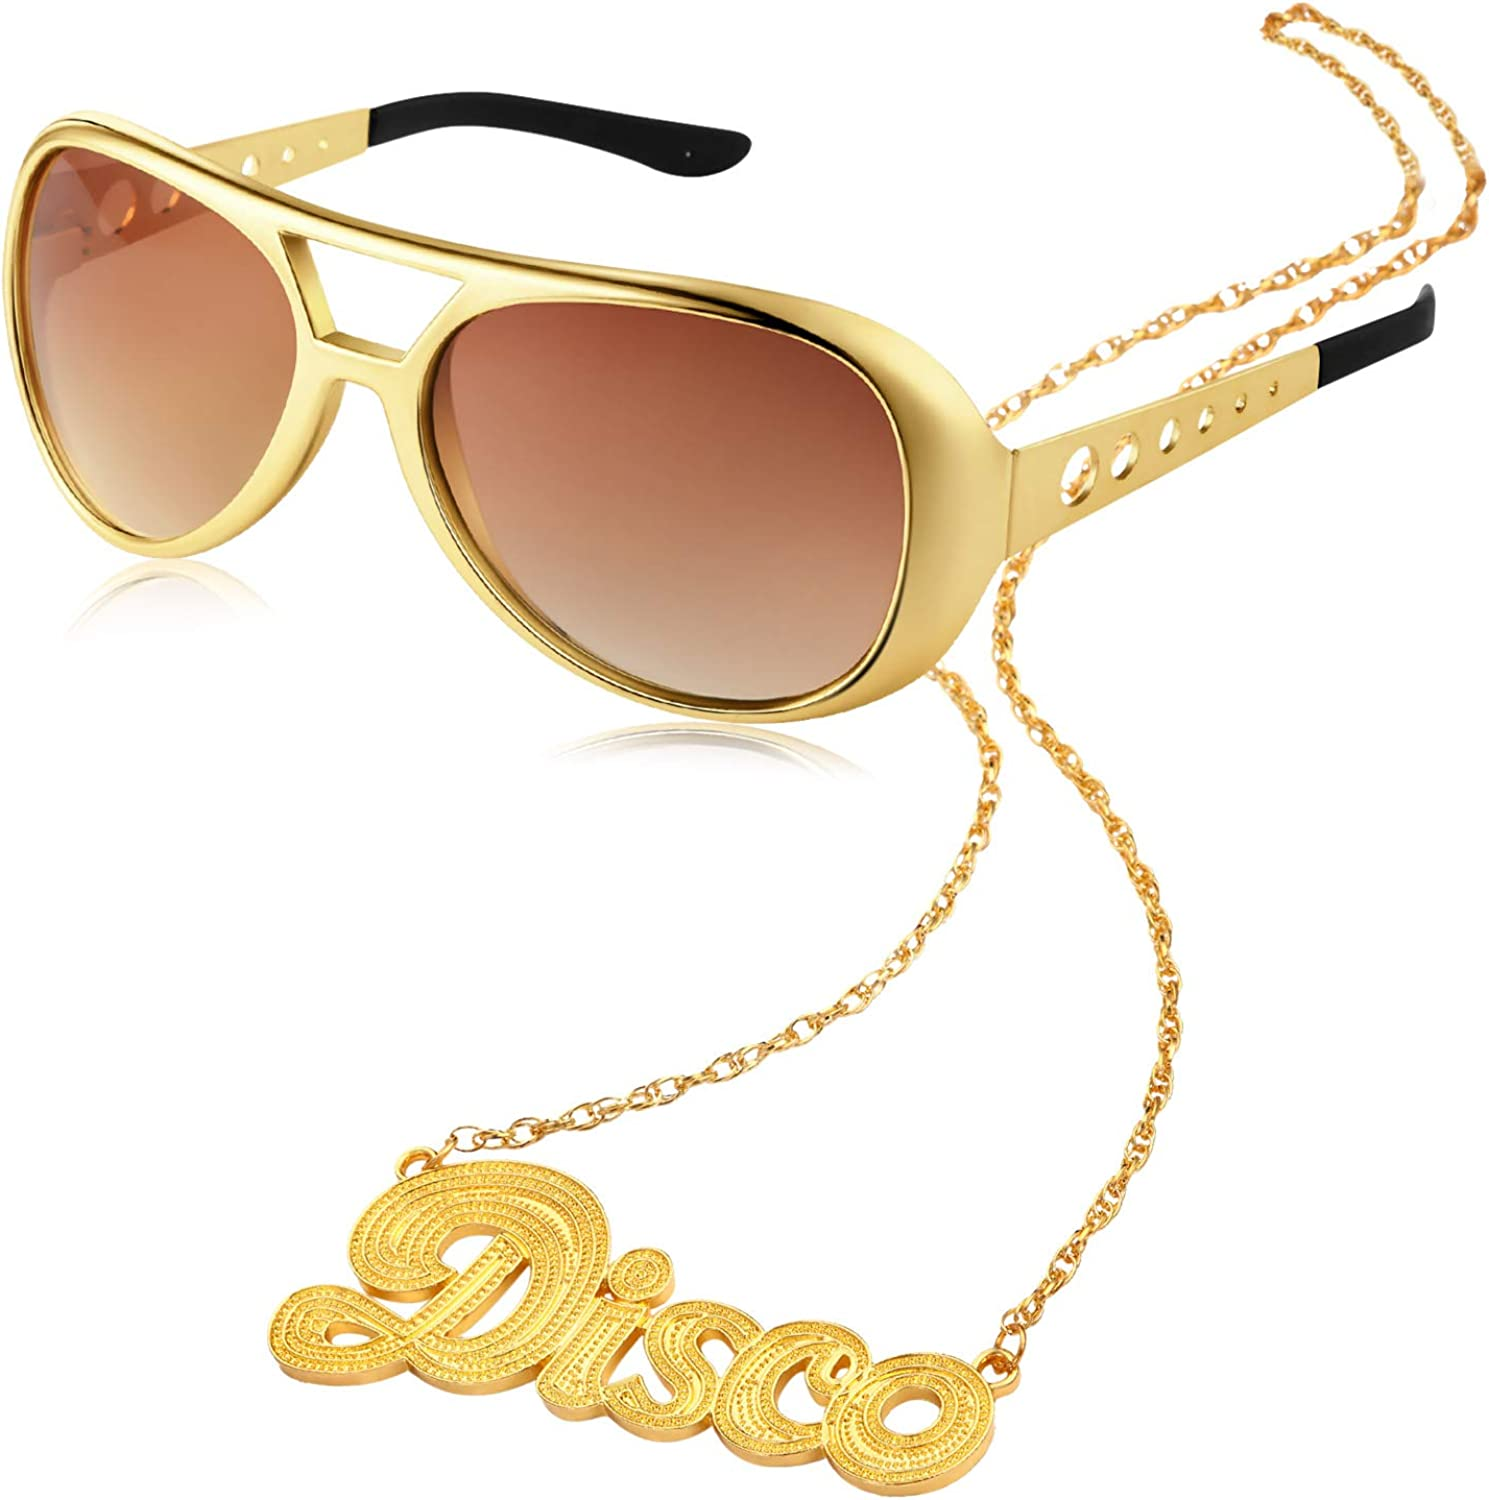 2 Pieces Disco Set Includes 1 Pair of Rock Star Costume Sunglasses and 1 Piece Disco Sign Necklace 50's 60's Gold 71AU2BQ4iskL